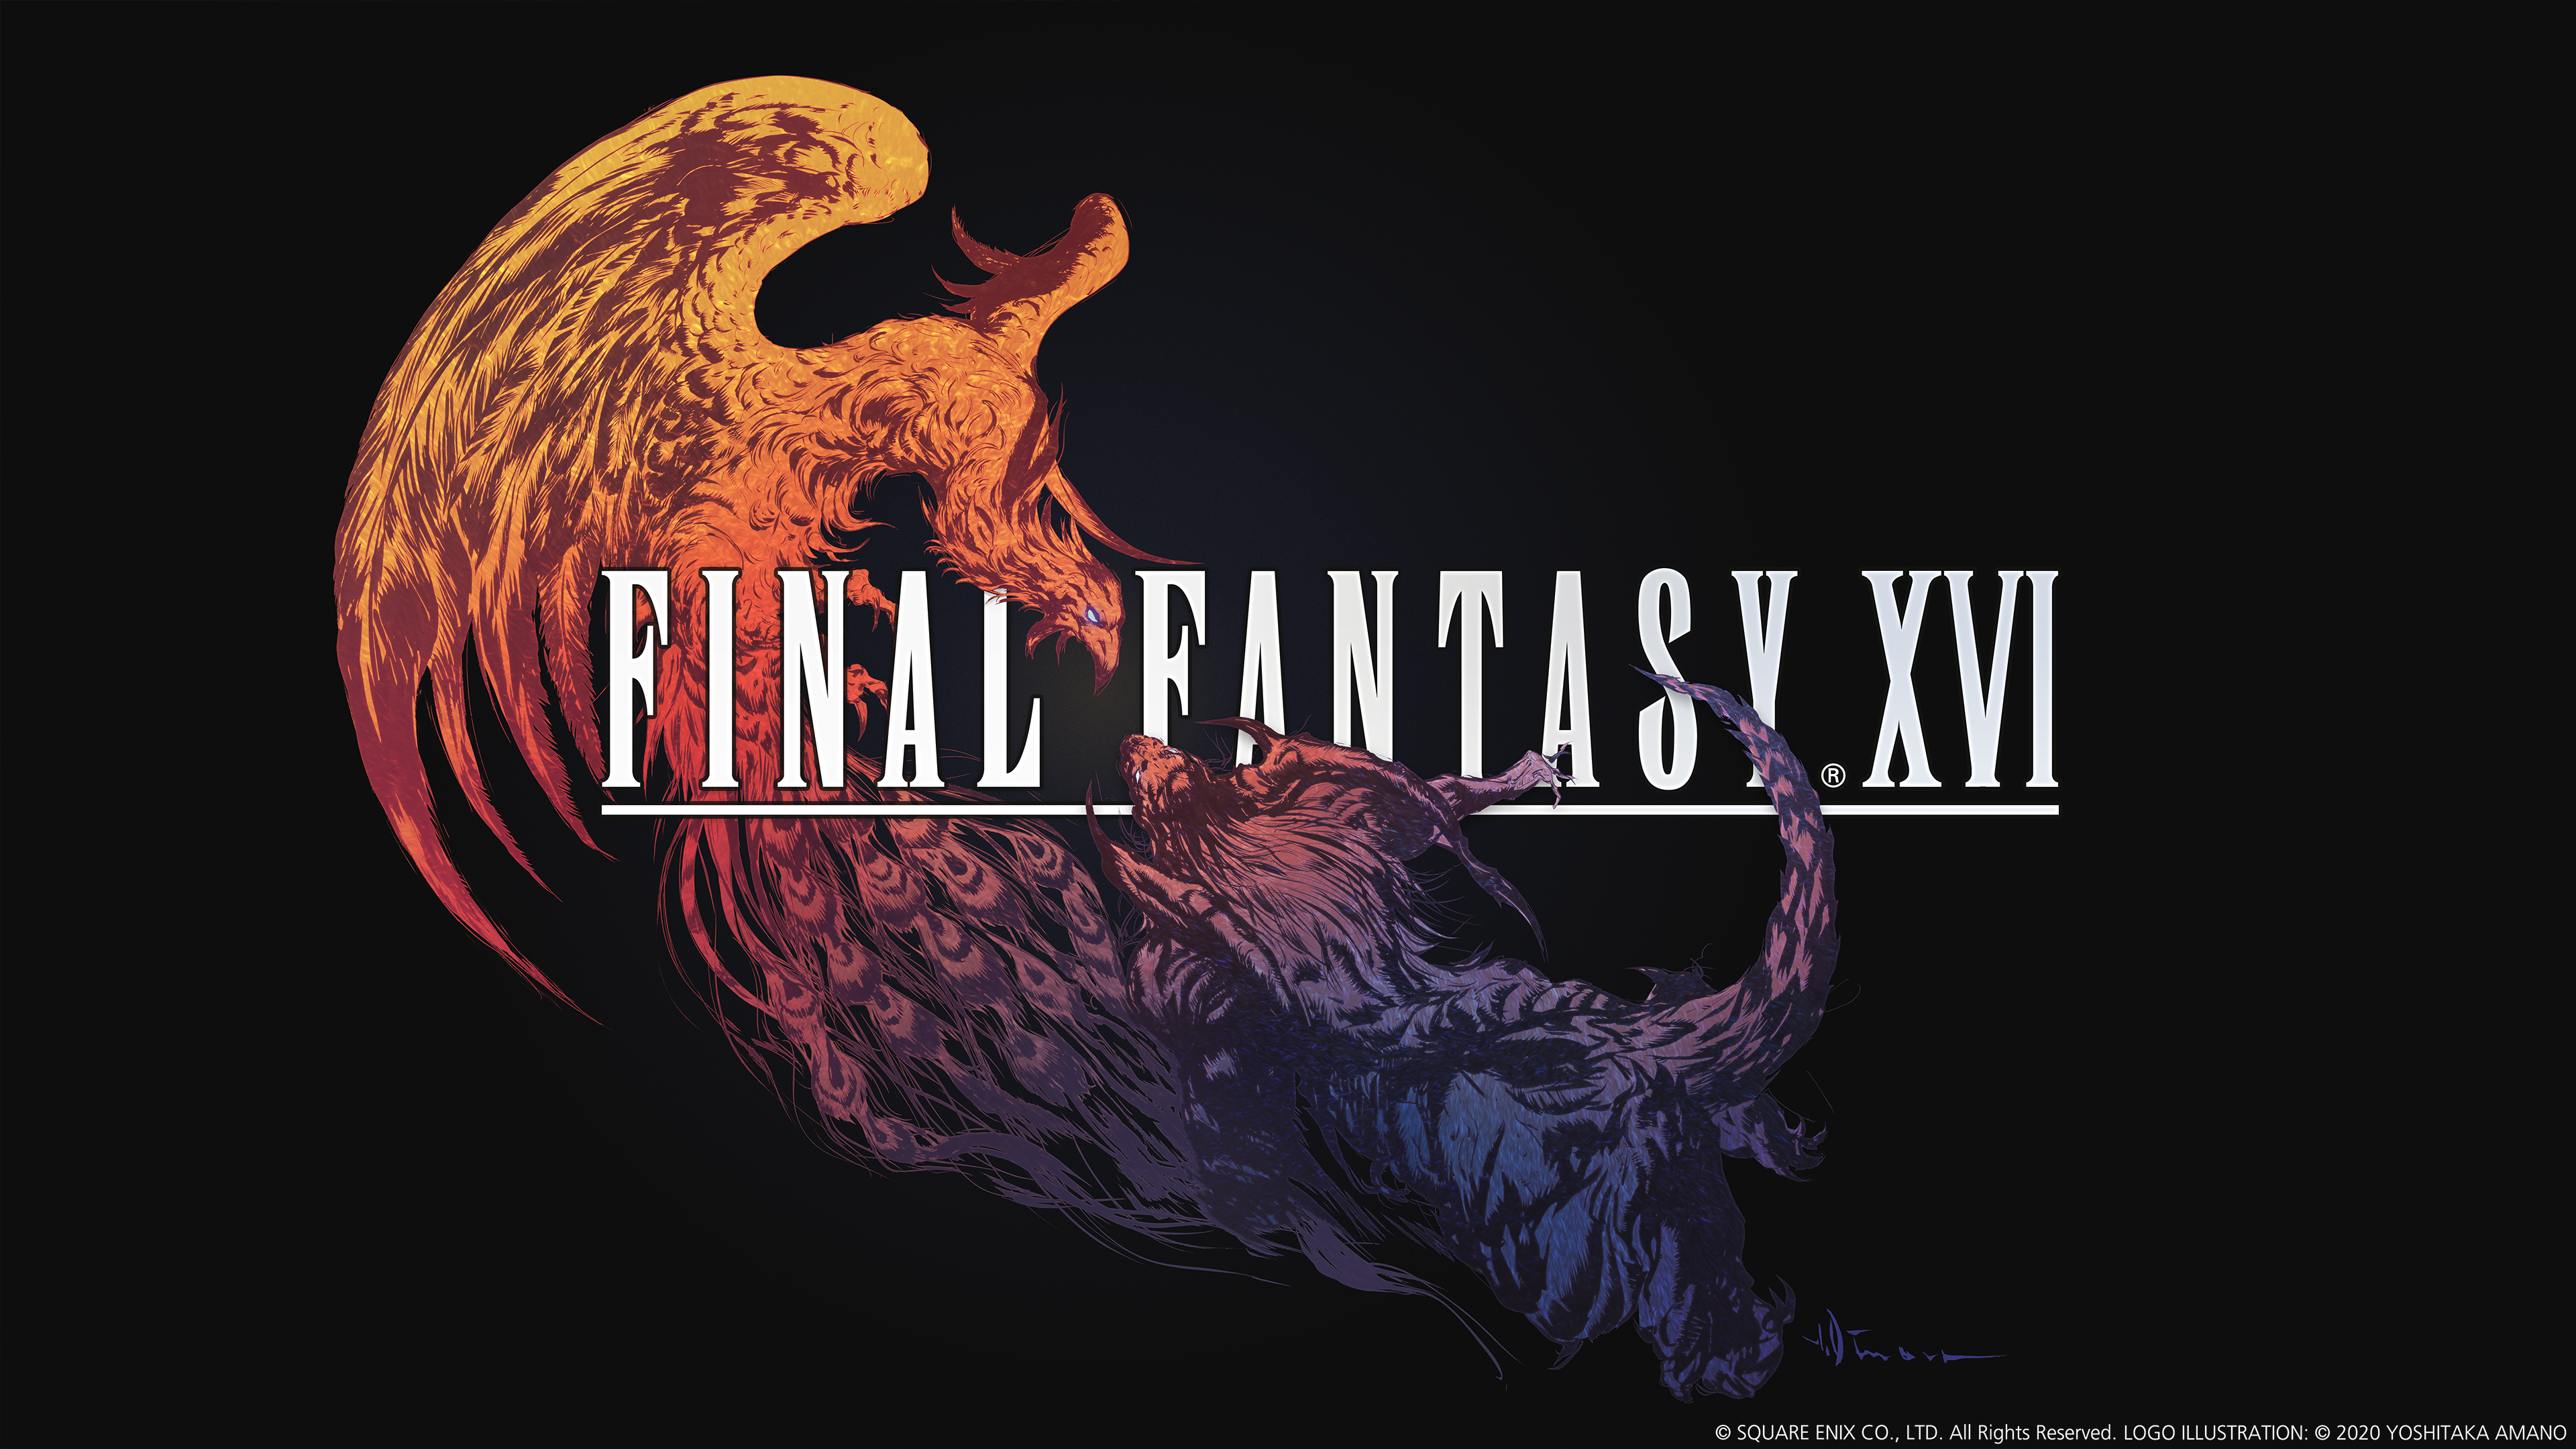 Final Fantasy XVI Announced and Teaser Website Launched